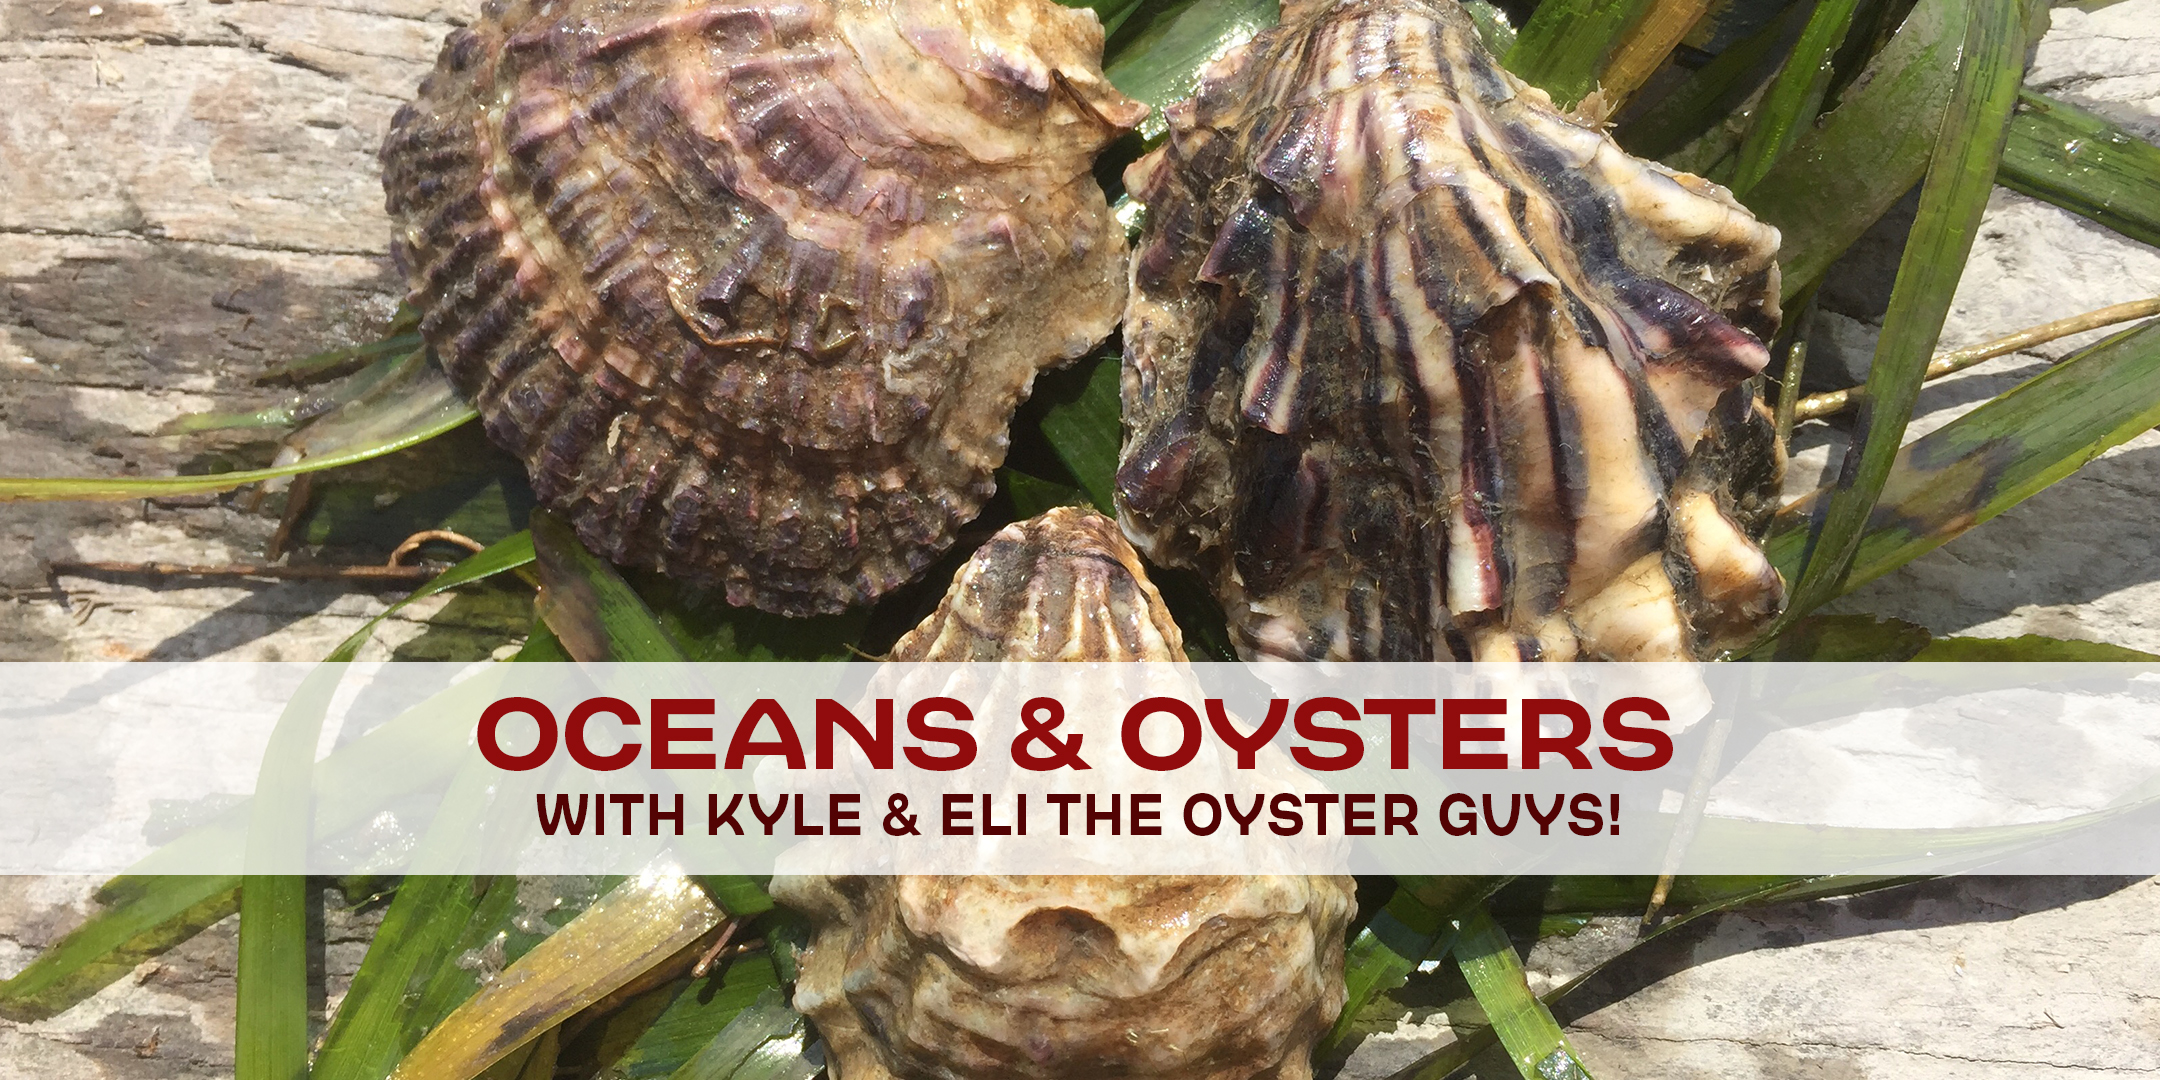 oceans-oysters